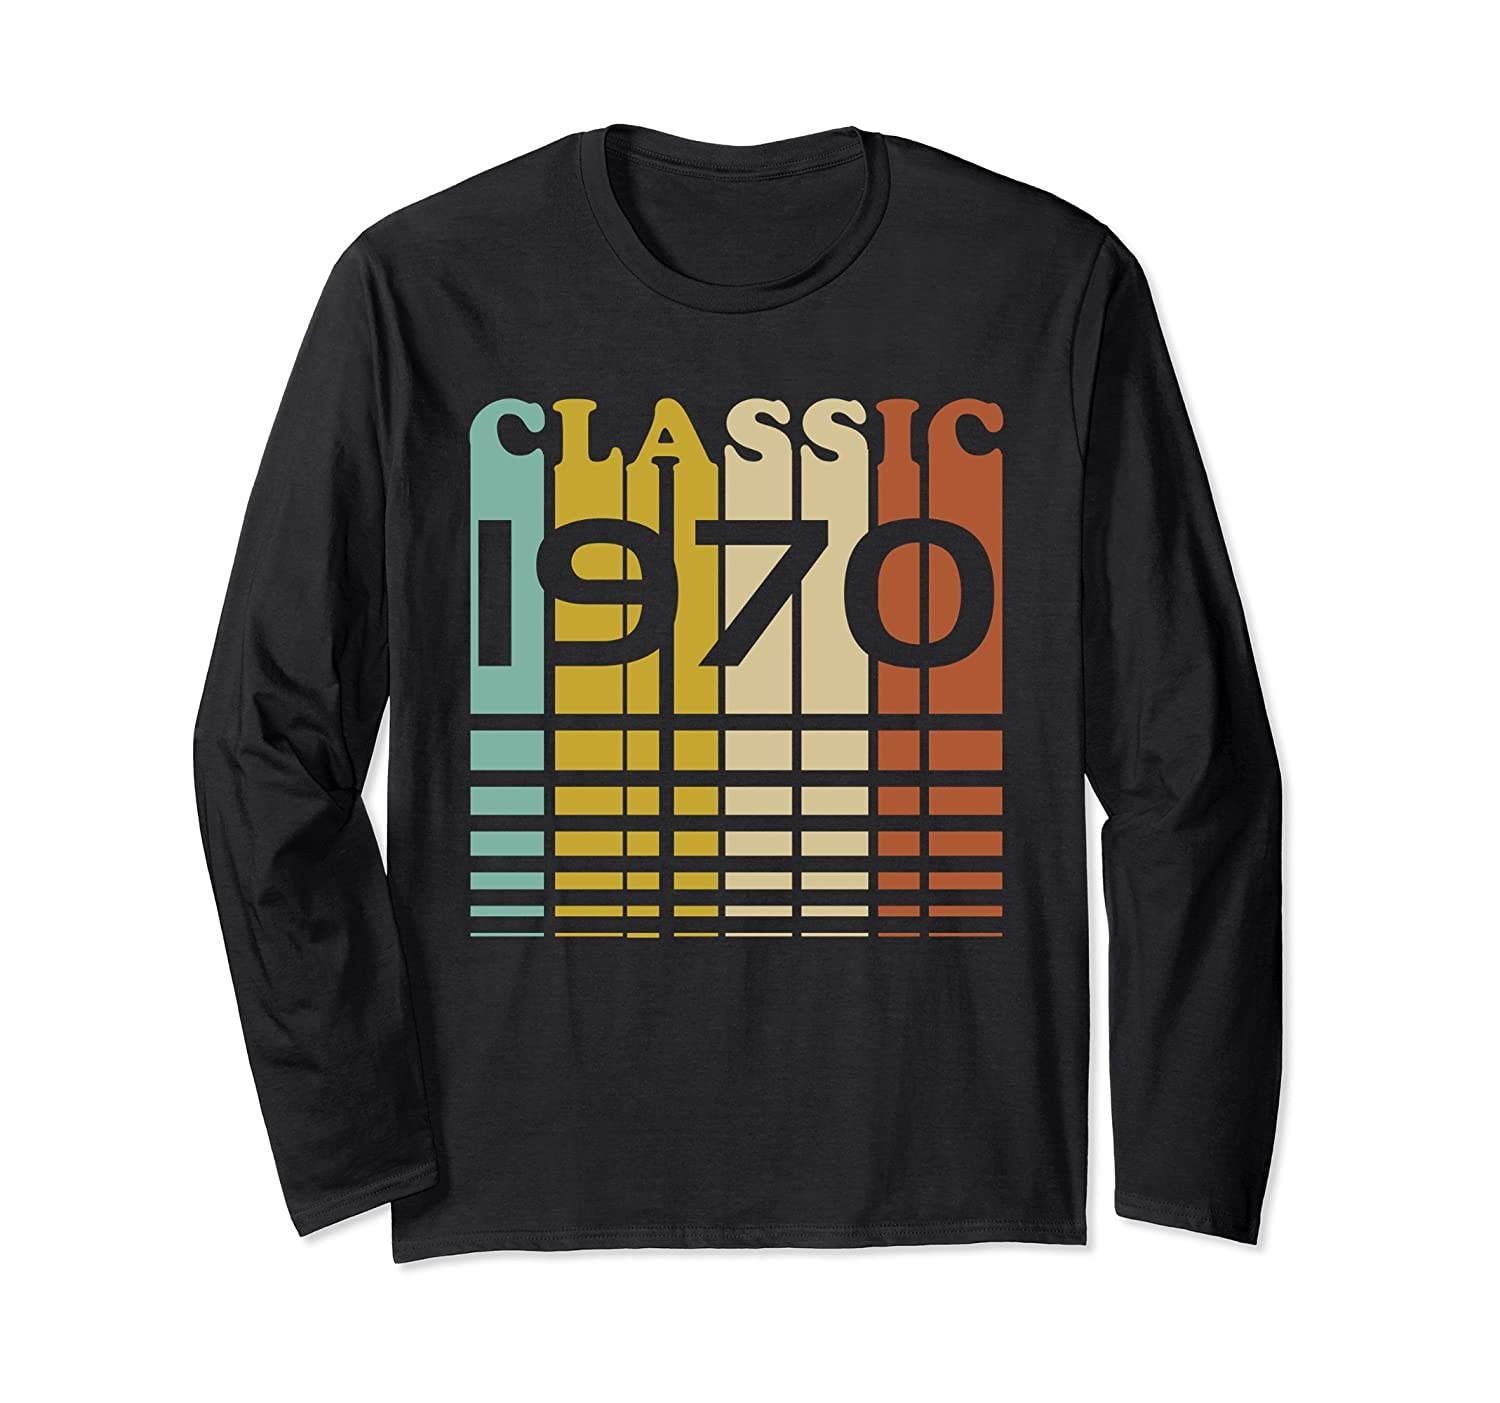 1970 Classic Birthday 47th B-Day Gift Long Sleeve Shirt-Rose